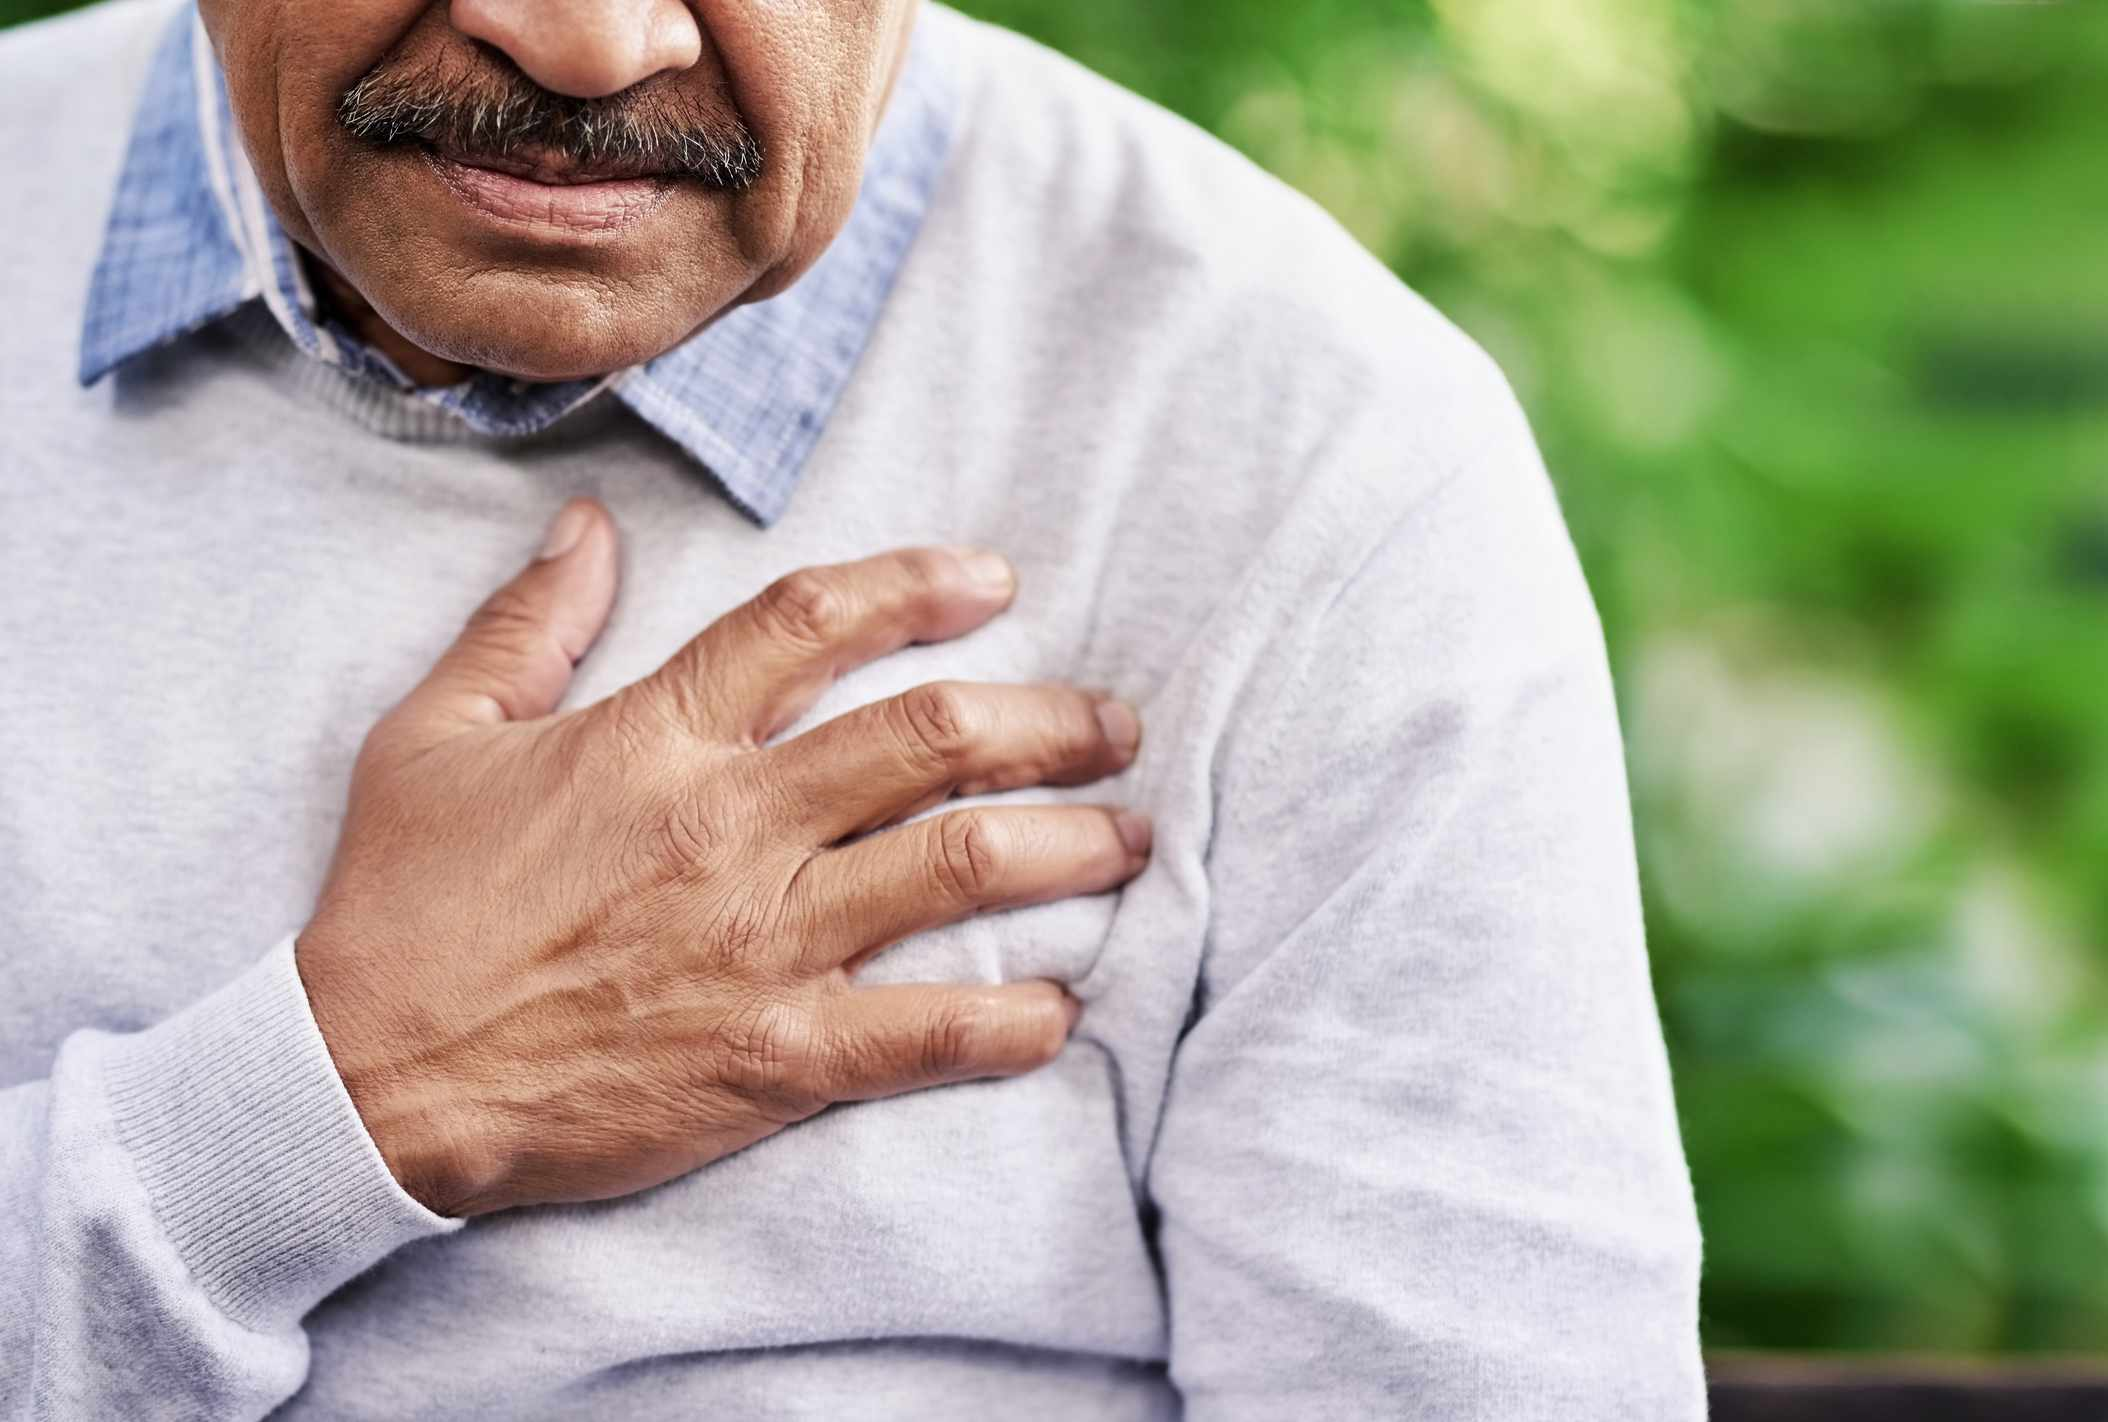 A man clutching his chest in pain